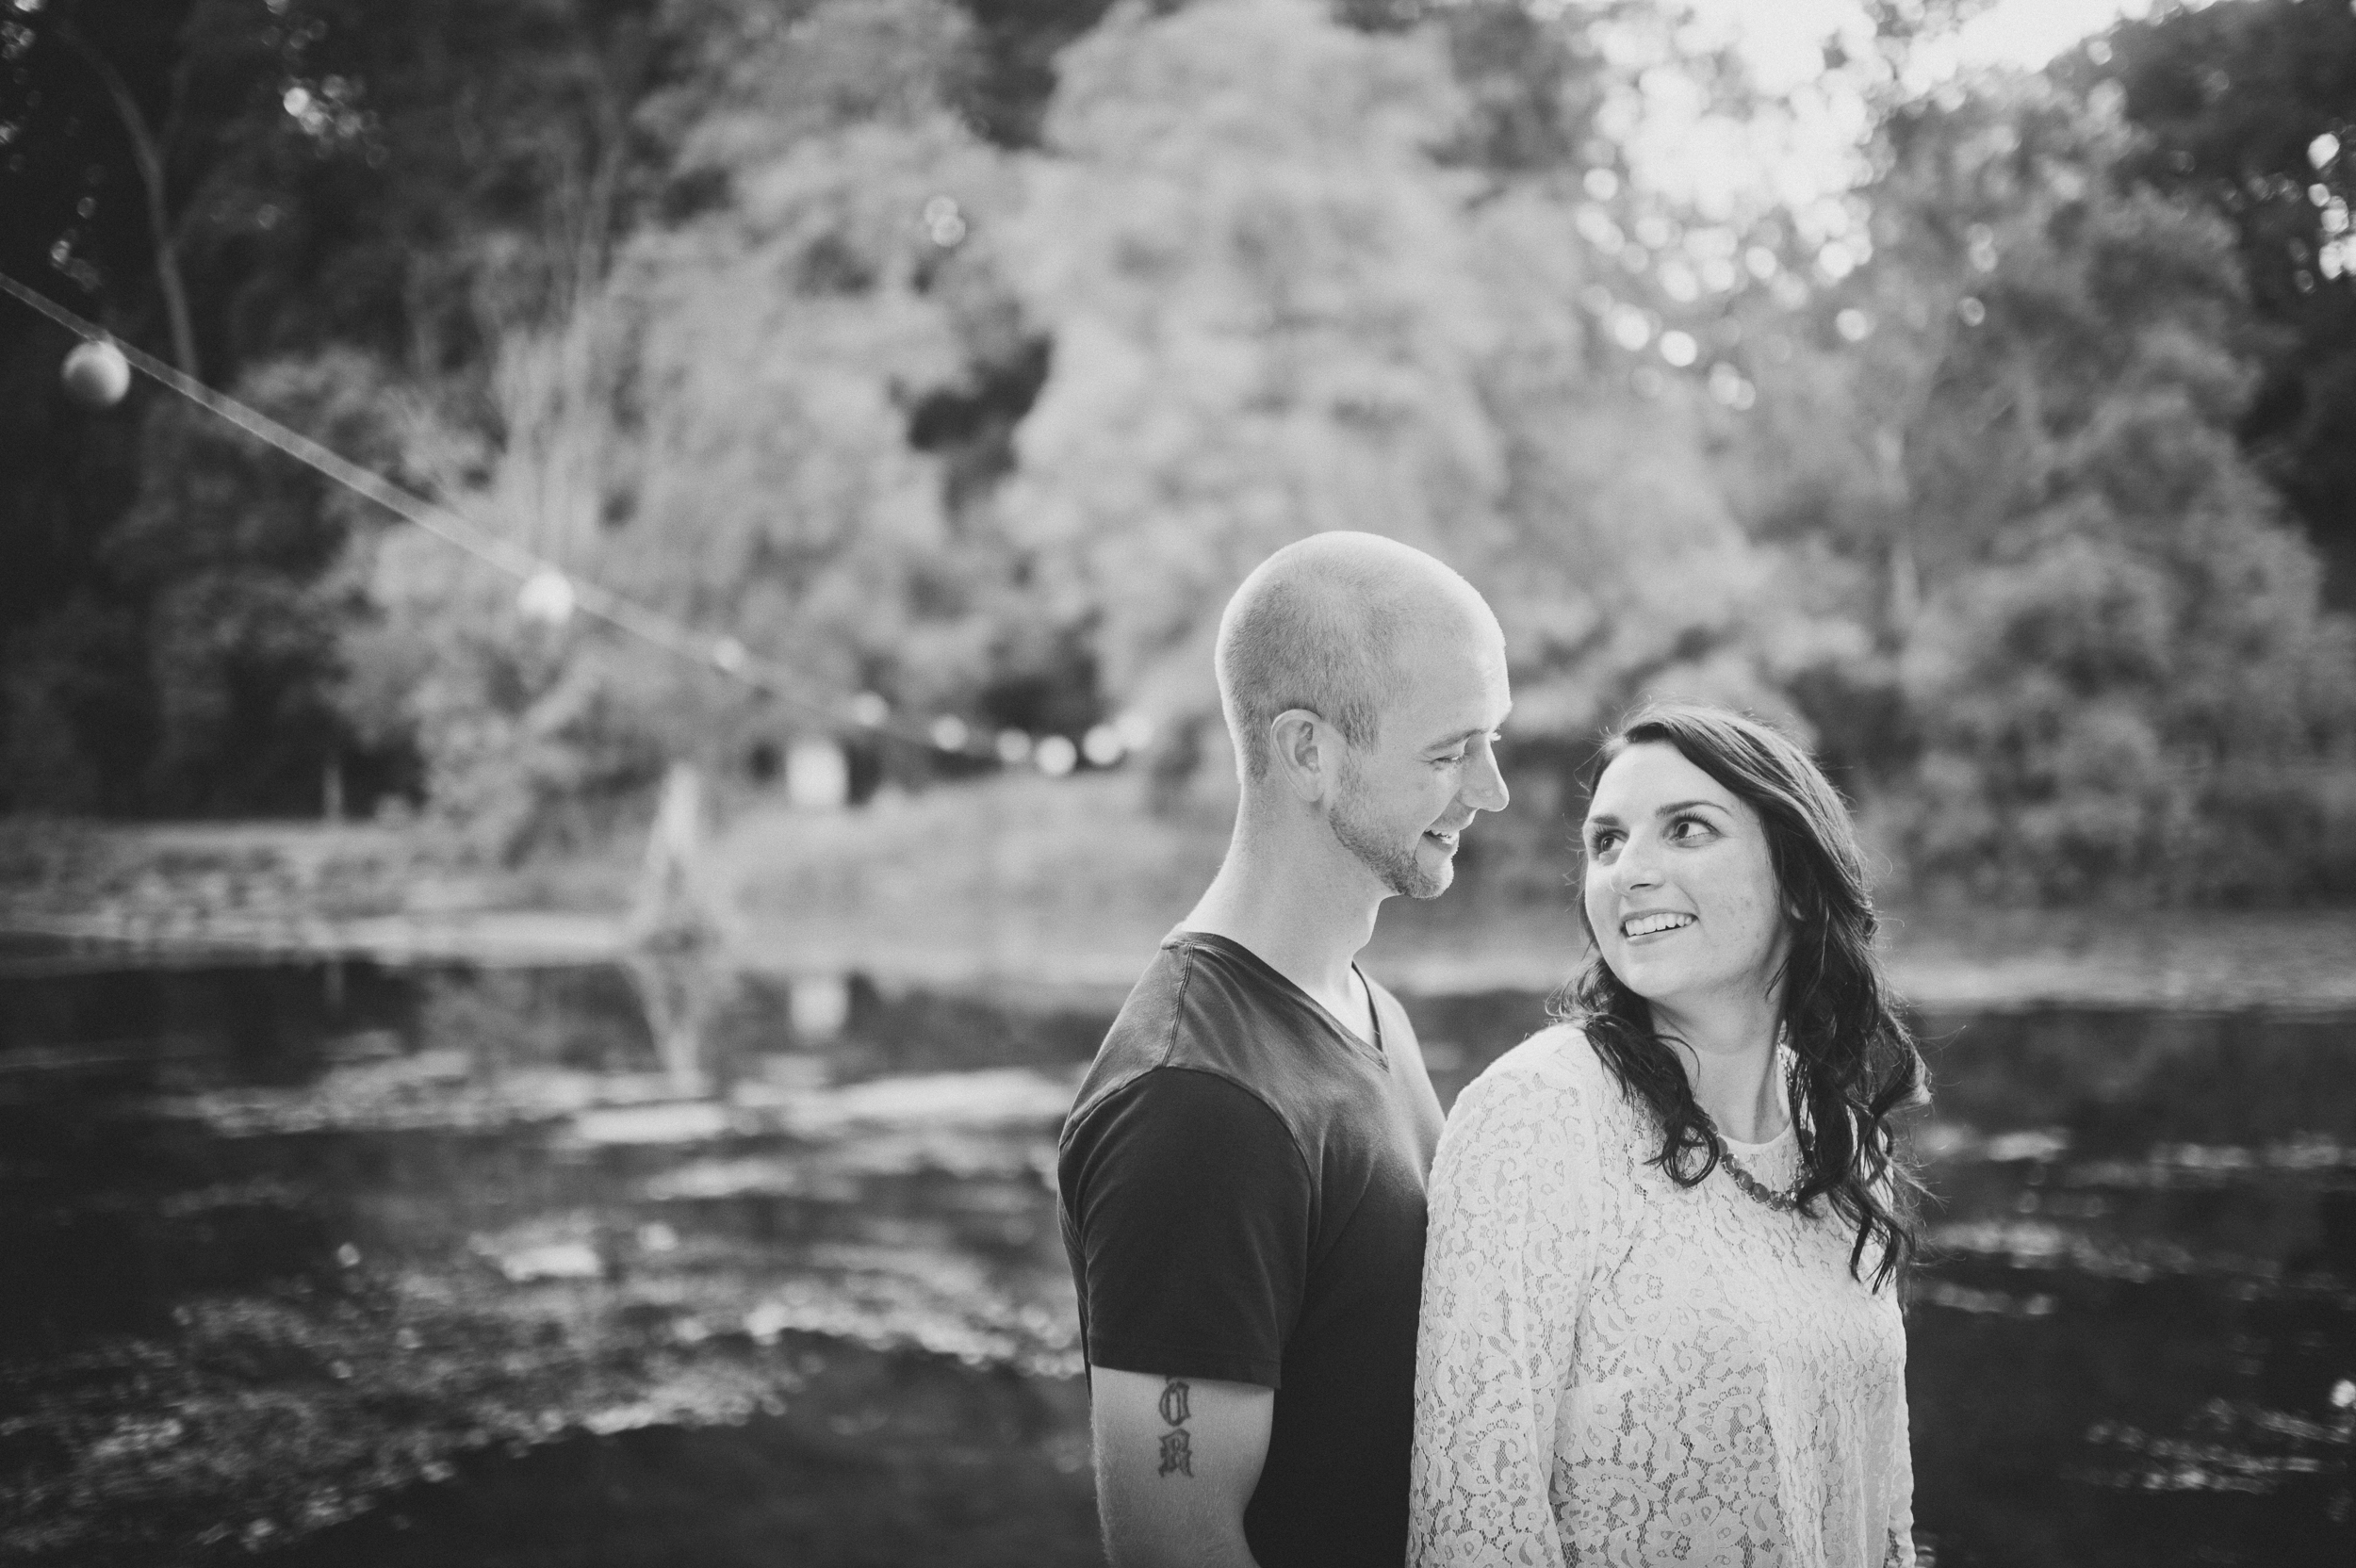 pat-robinson-photography-pa-engagement-session-12.jpg